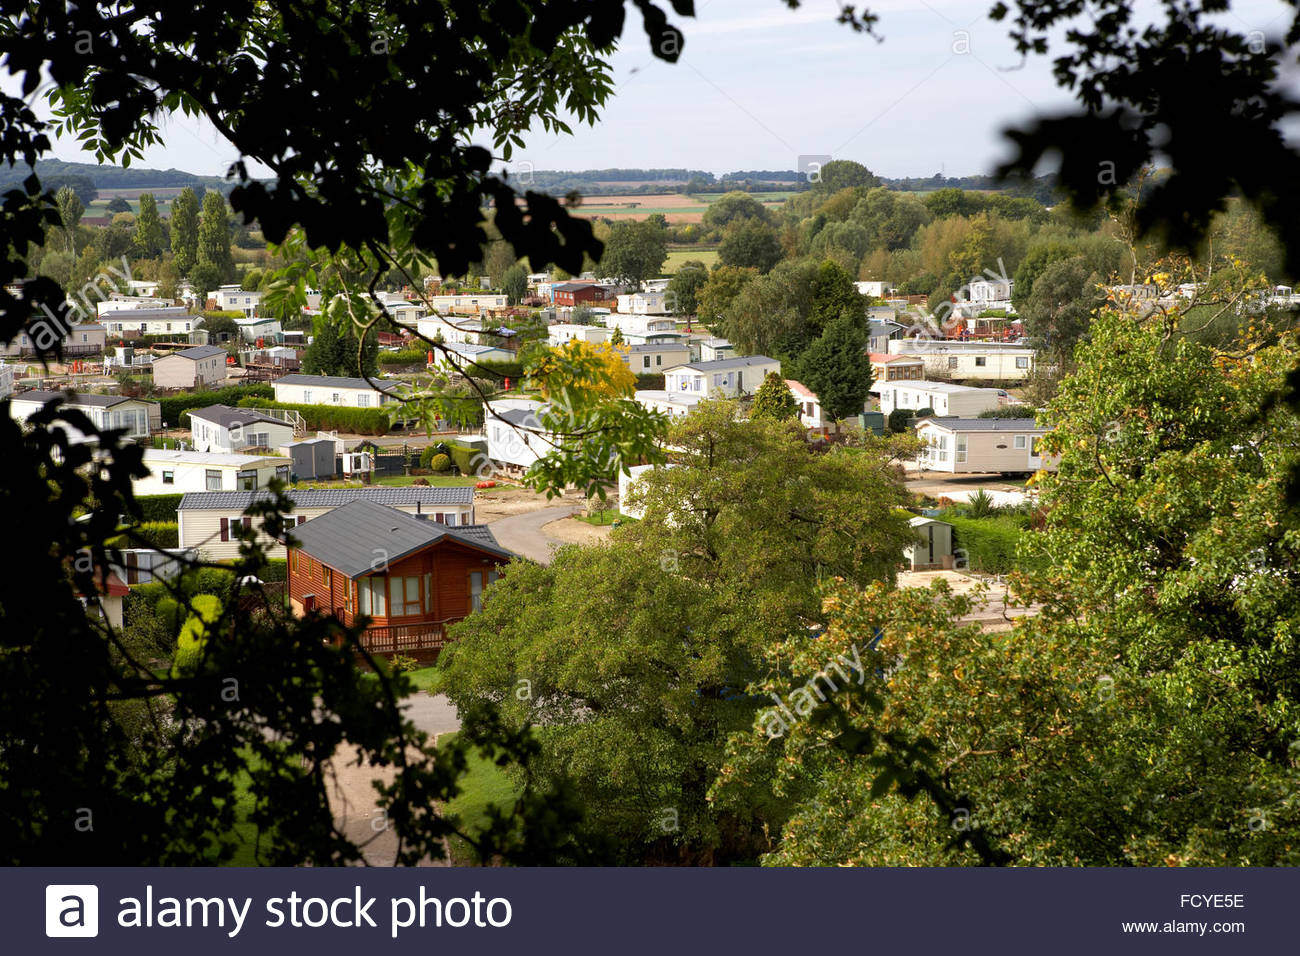 A Mobile Home Residential Park Stock Photo Royalty Free